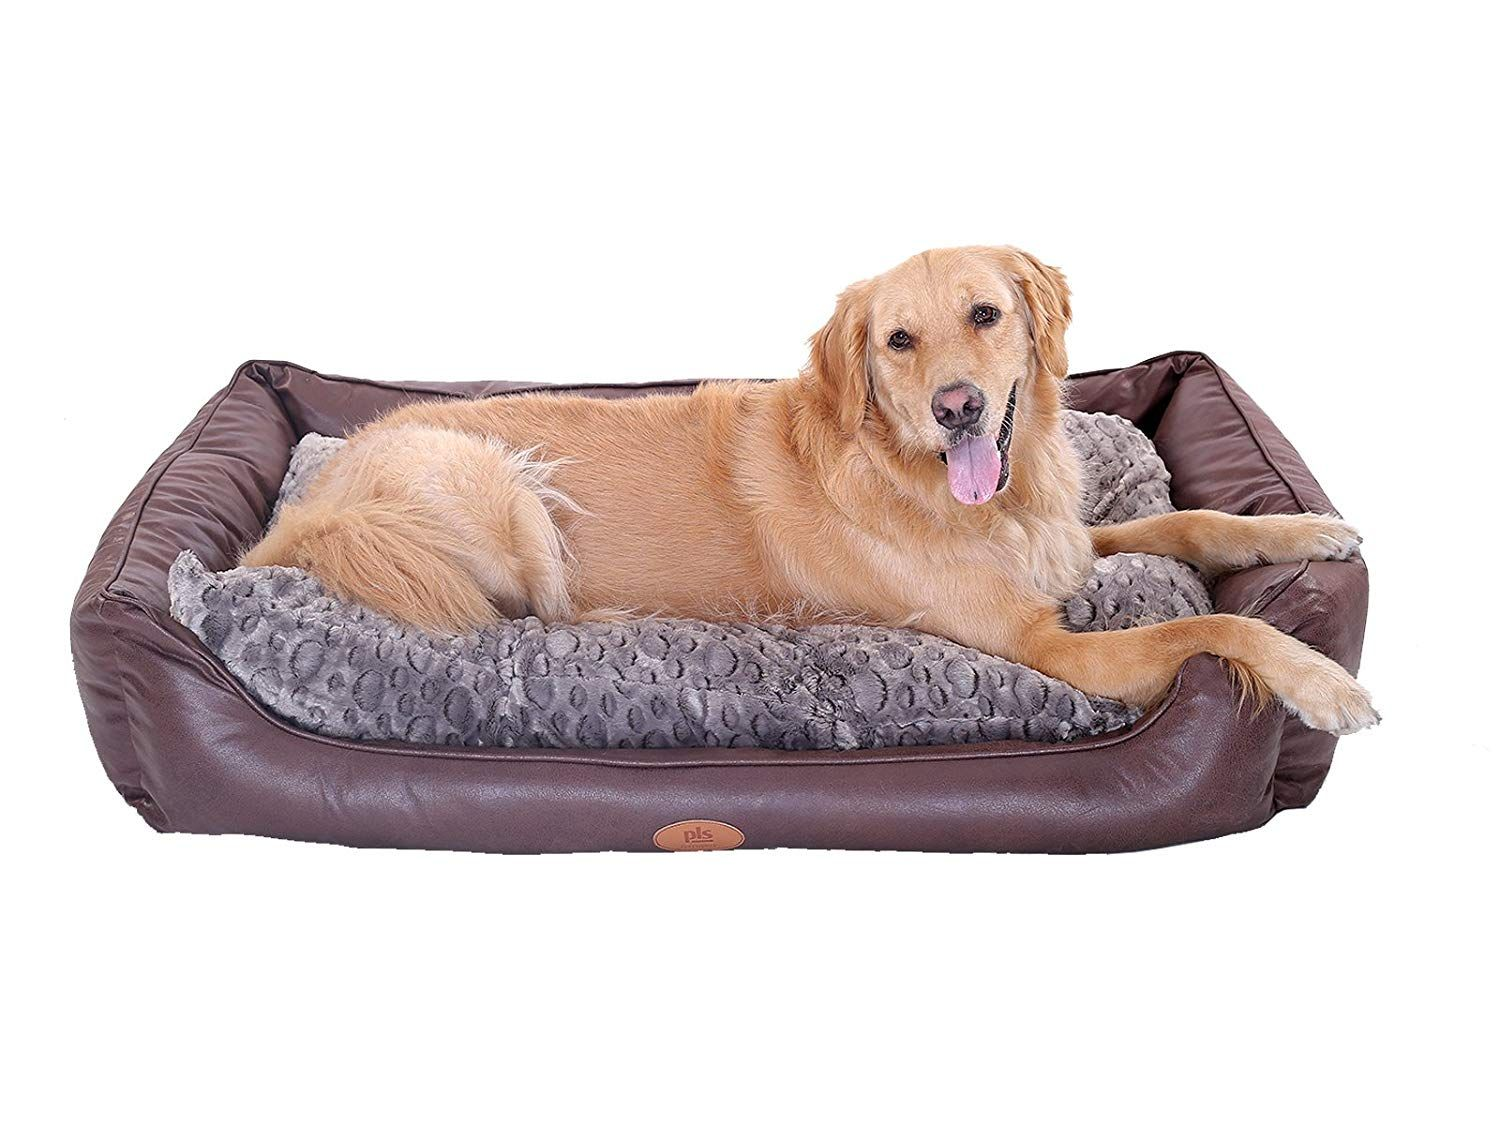 Pls Birdsong Brownie Bolster Pet Bed Dog Bed Cat Bed Removable Cover Completely Washable We Appreciate You For Seei Cat Bed Extra Large Dog Bed Dog Bed